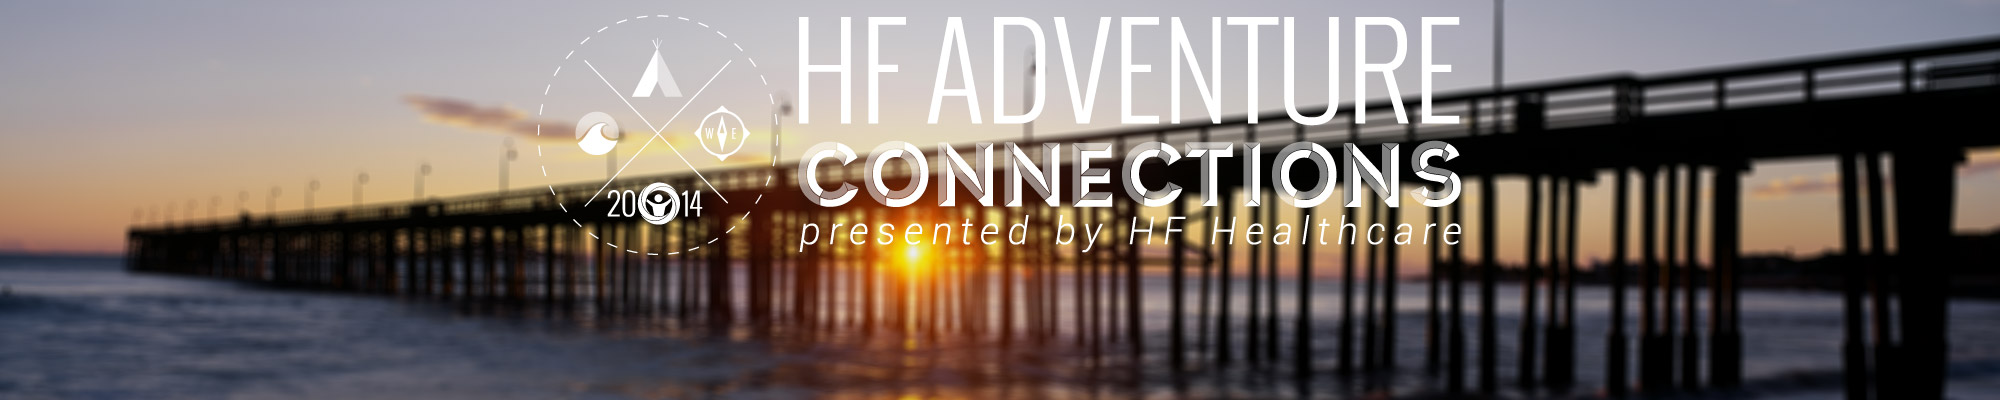 hf-adventure-connections3